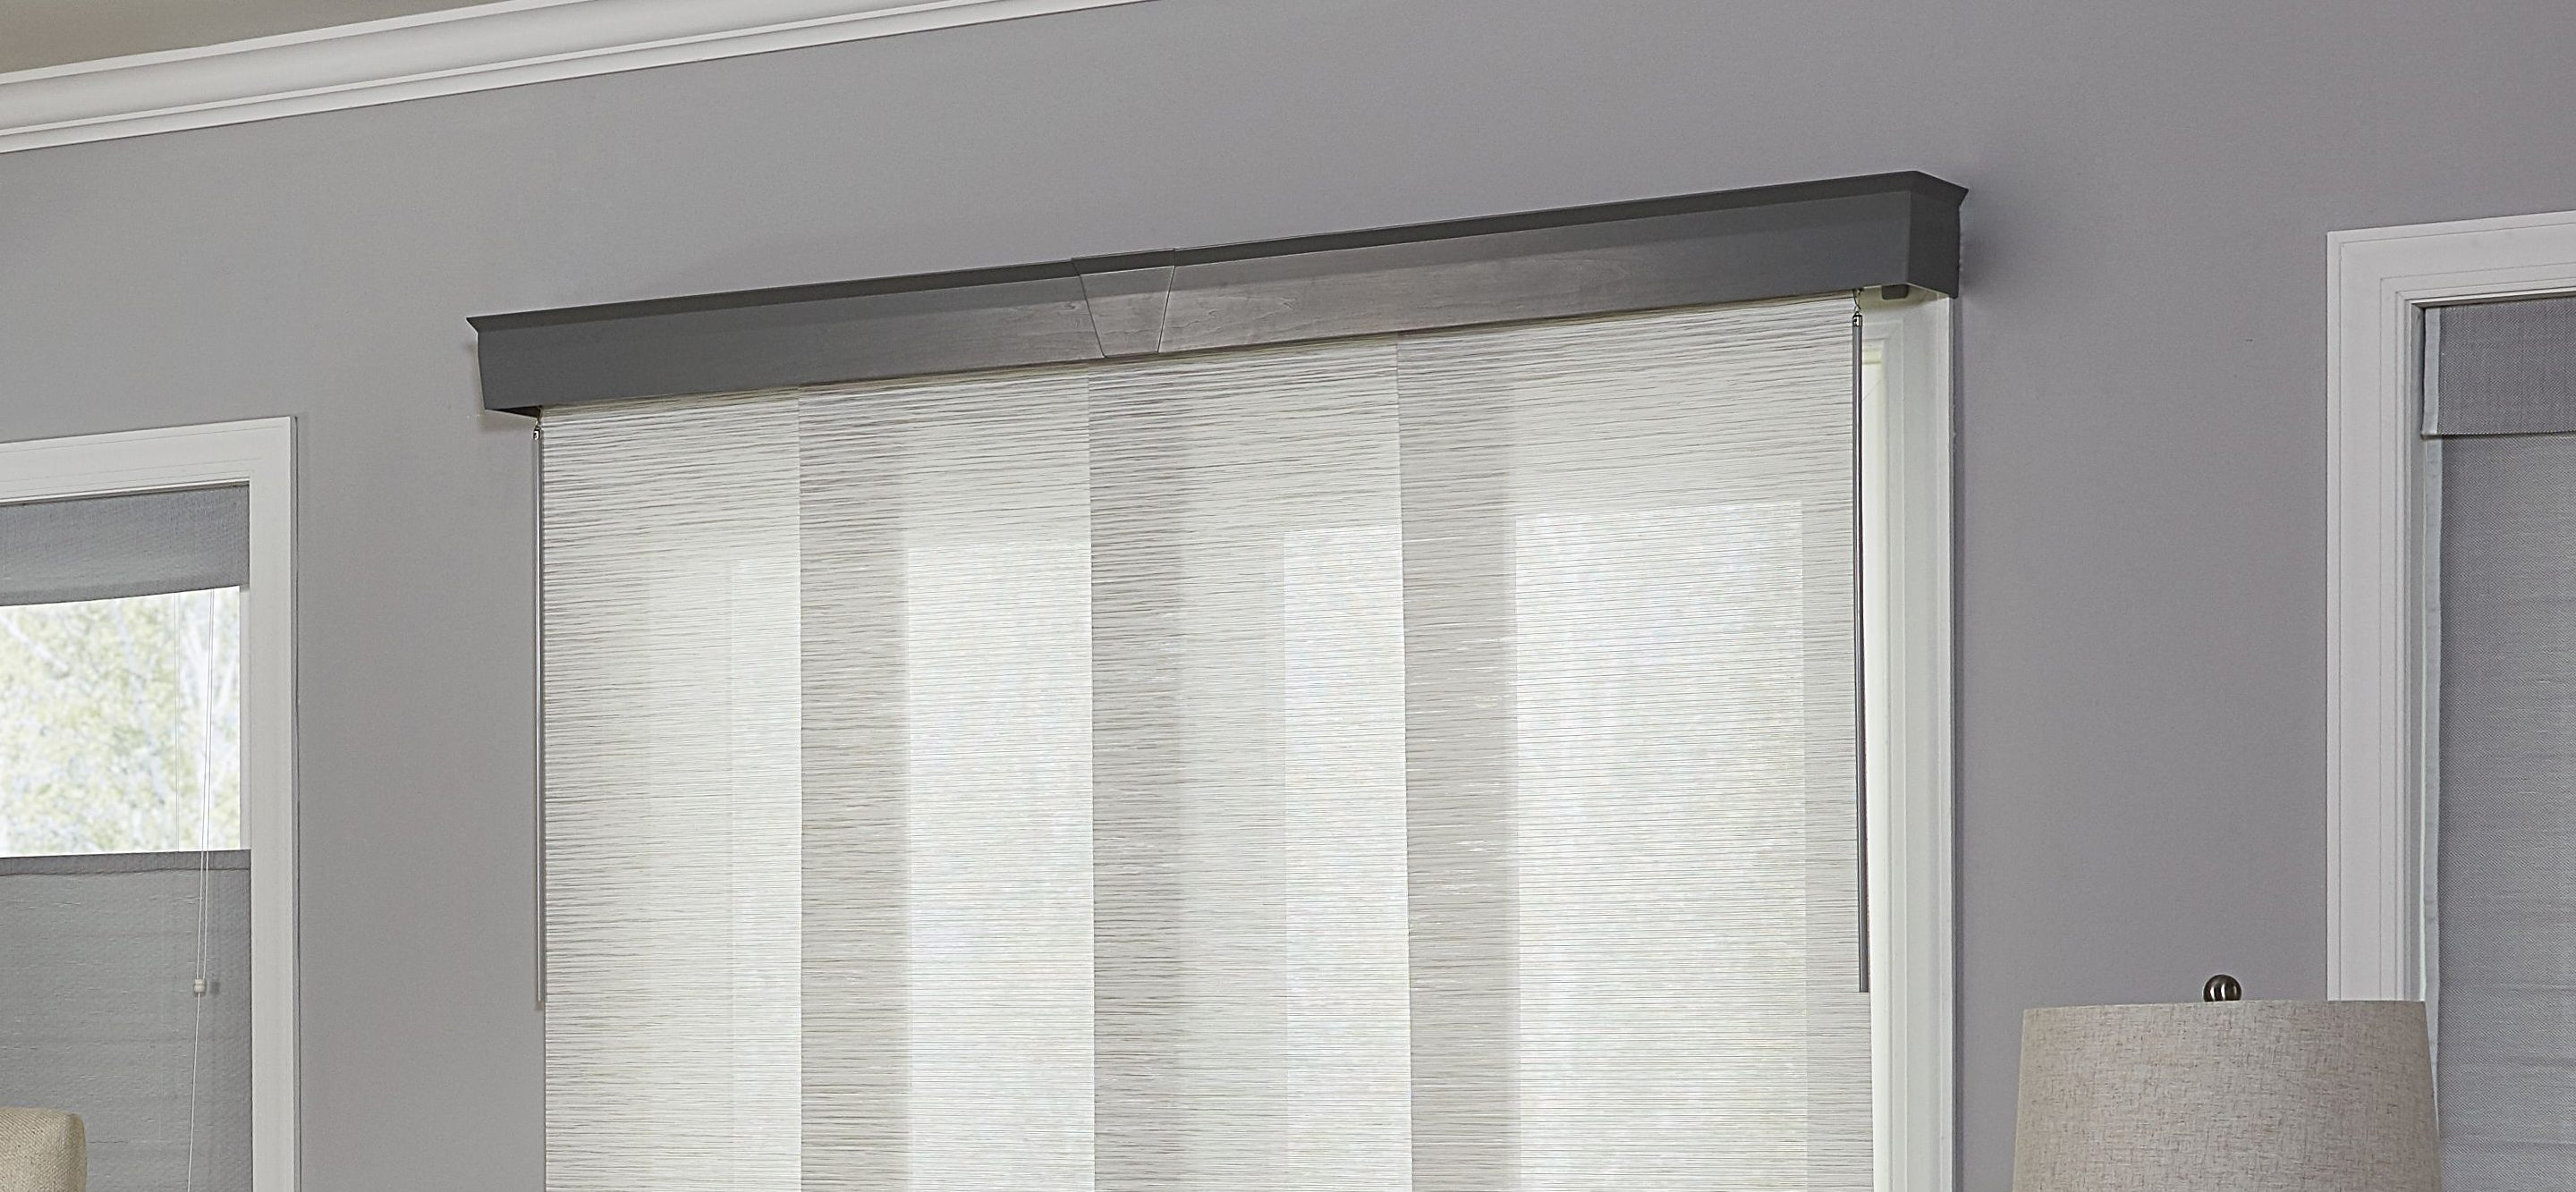 horizontal blinds for sliding glass doors the best vertical blinds alternatives for sliding glass doors DOQKPZQ